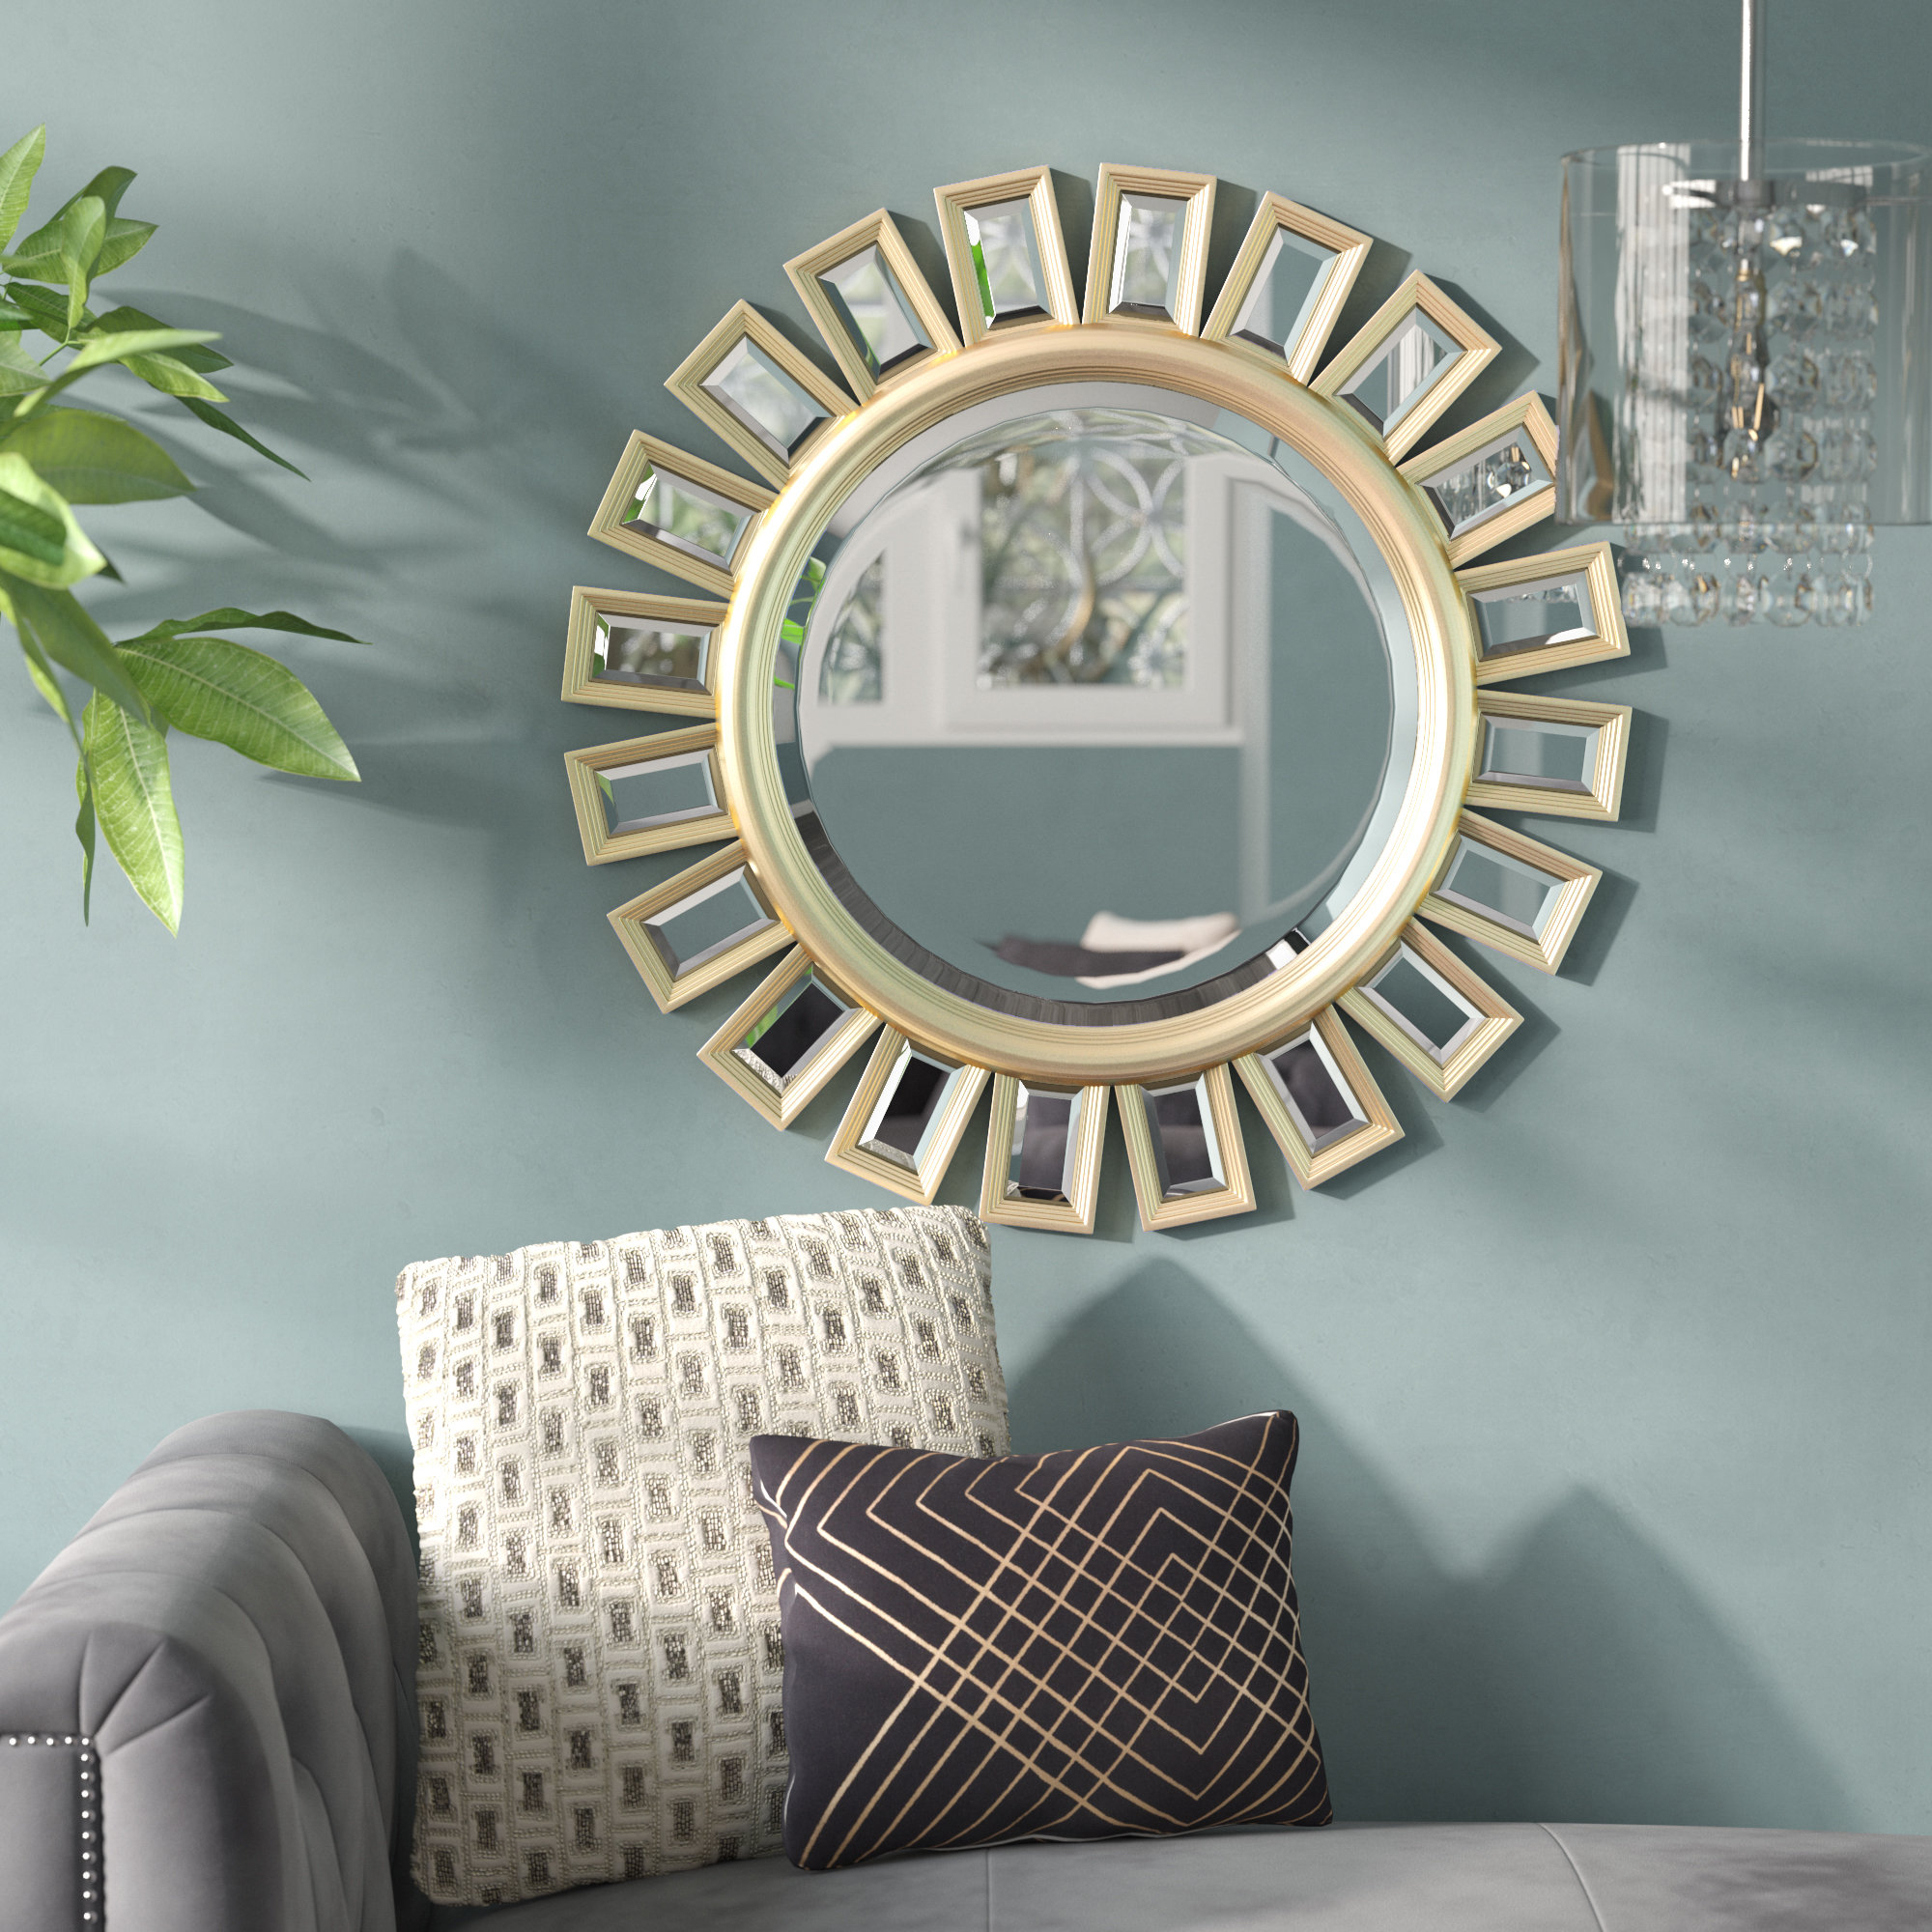 Sunburst Beveled Wall Mirror With Starburst Wall Decor By Willa Arlo Interiors (View 19 of 30)